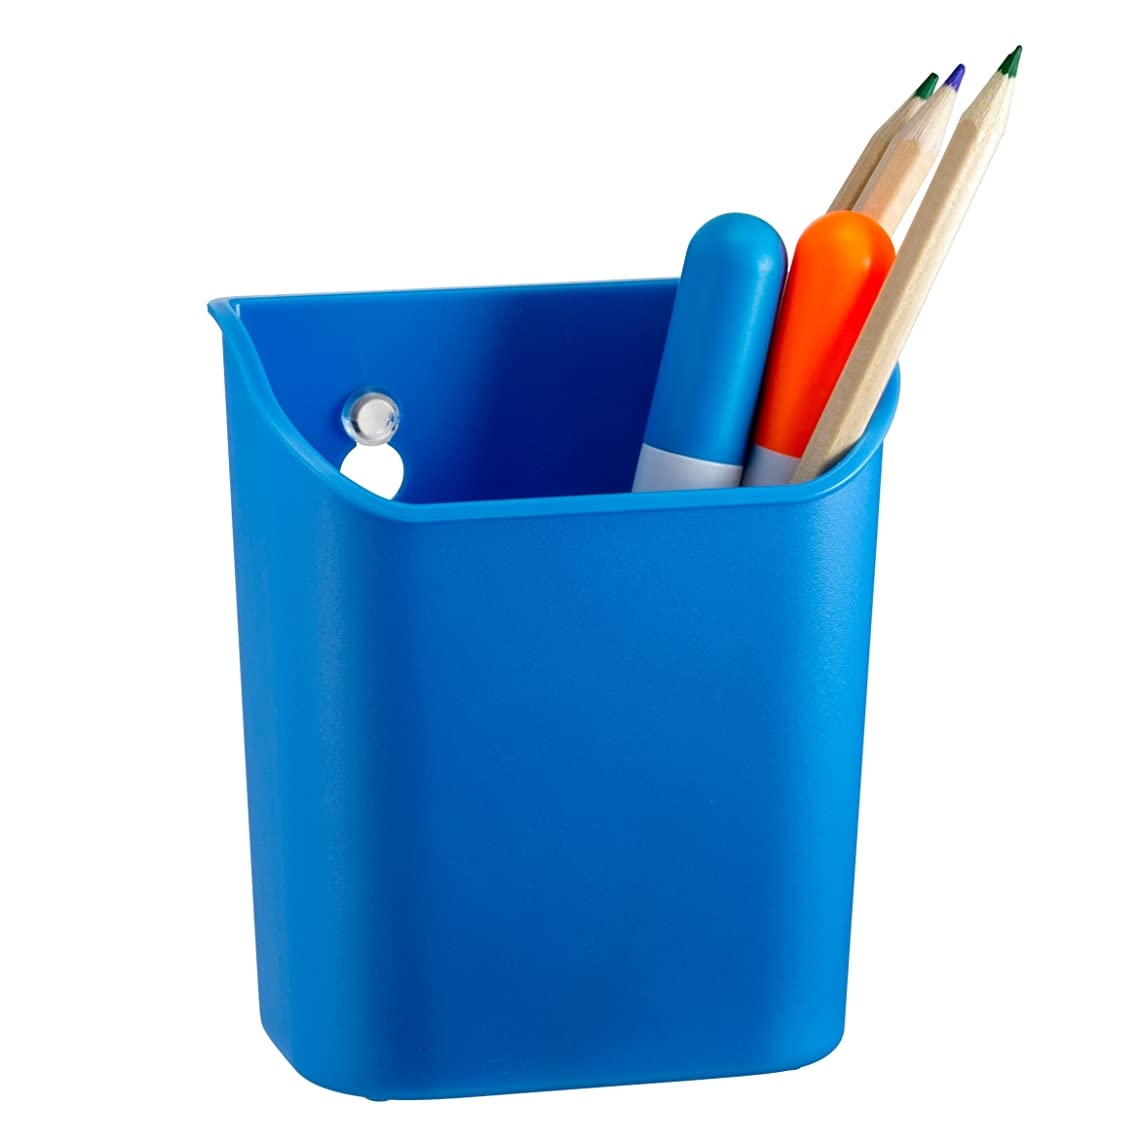 Officemate Octoorg Pencil Cup with Suction Cups, Blue (92570)